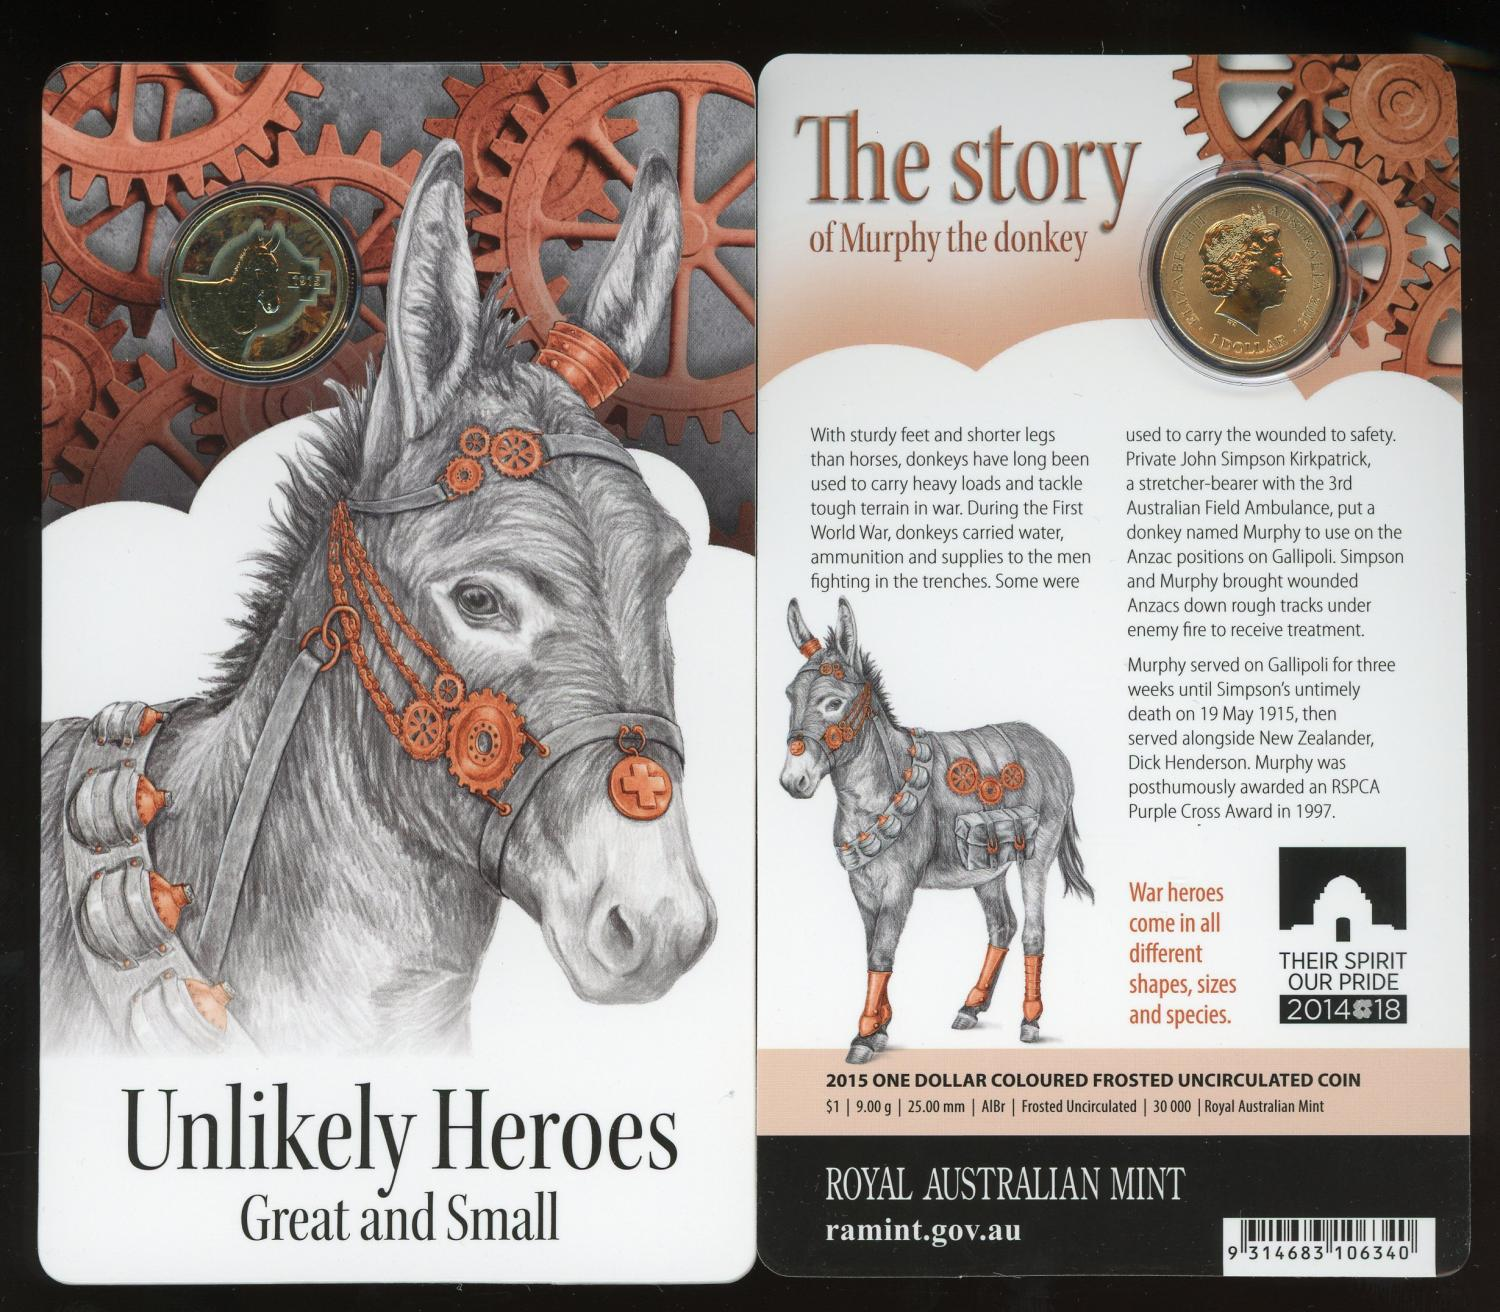 Thumbnail for 2015 Unlikely Heroes - Murphy the Donkey